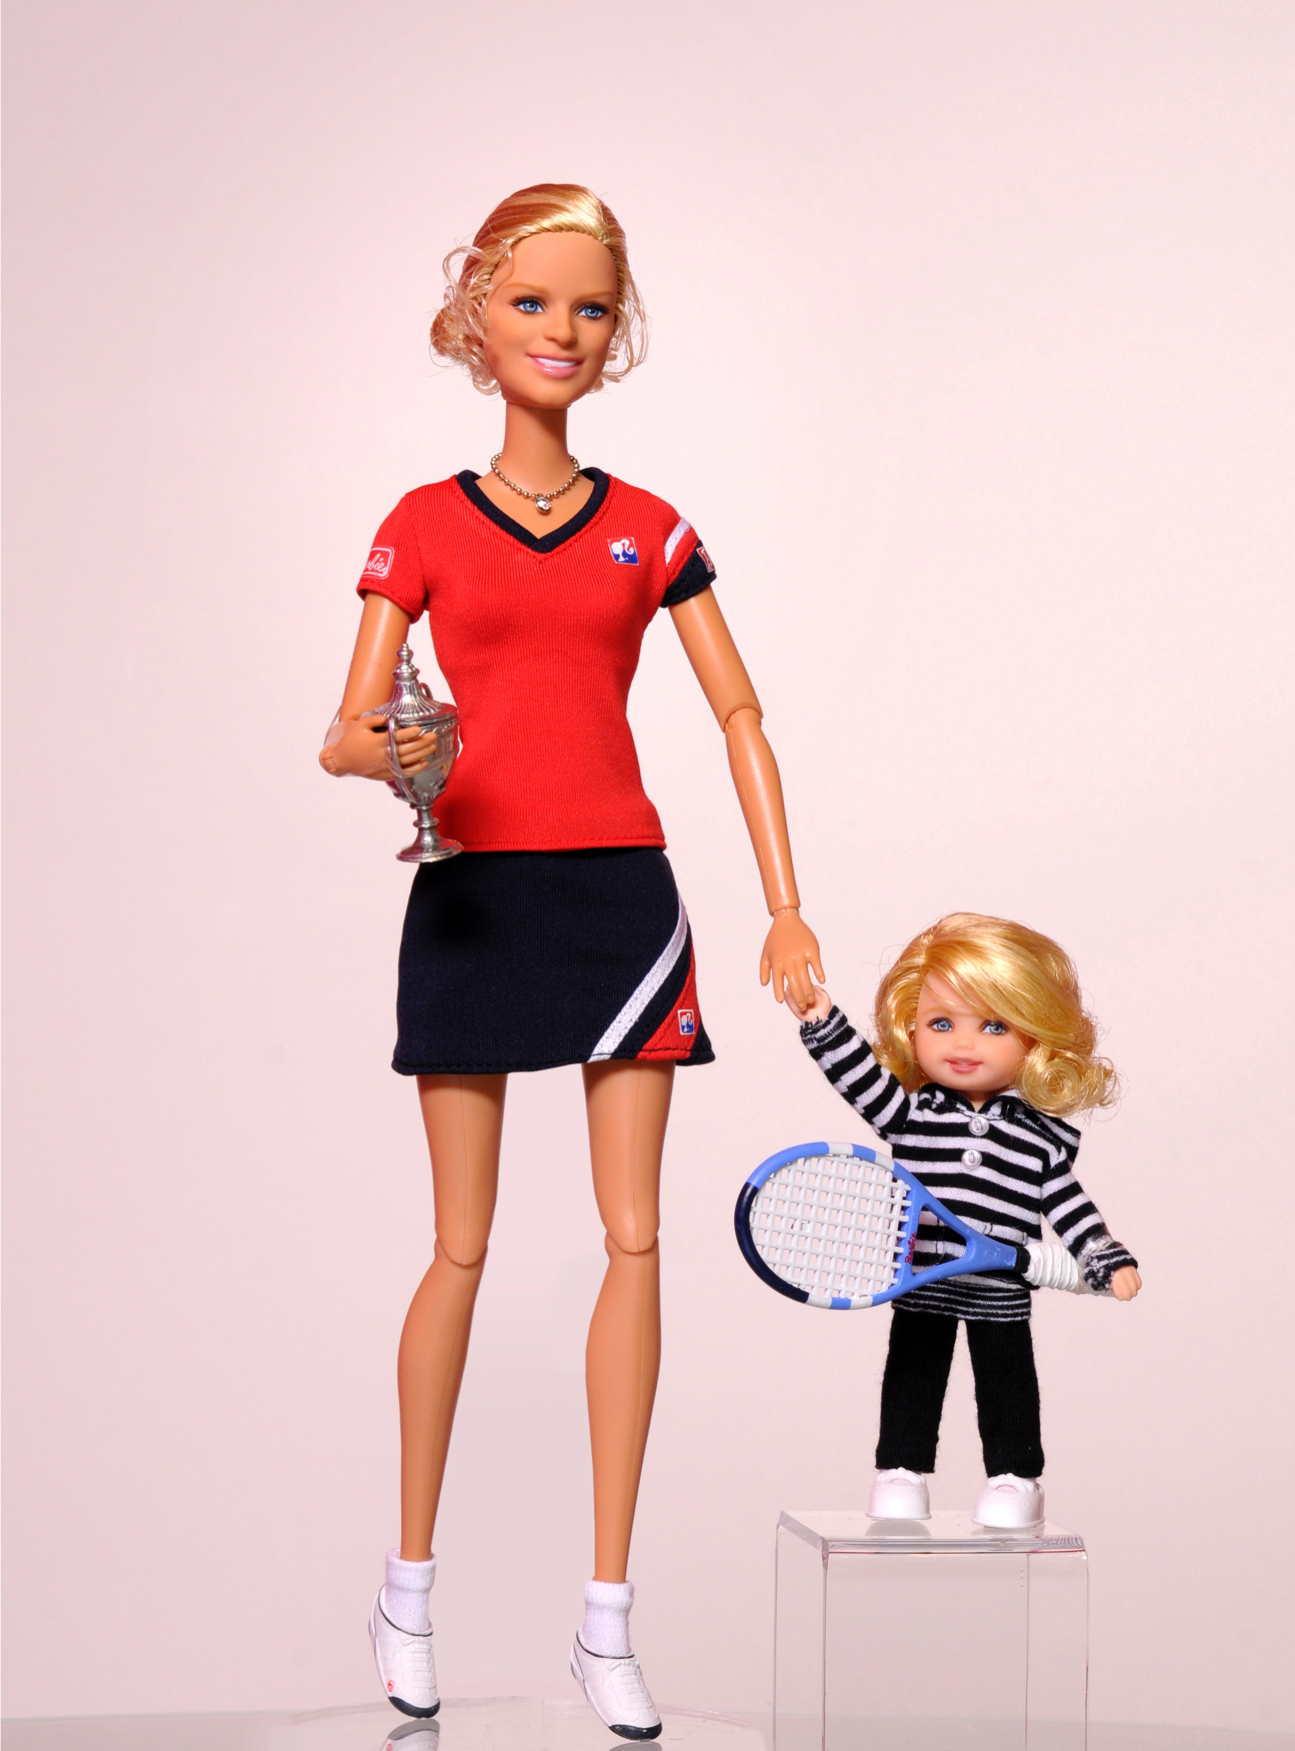 The Kim Clijsters Barbie, released in 2010.